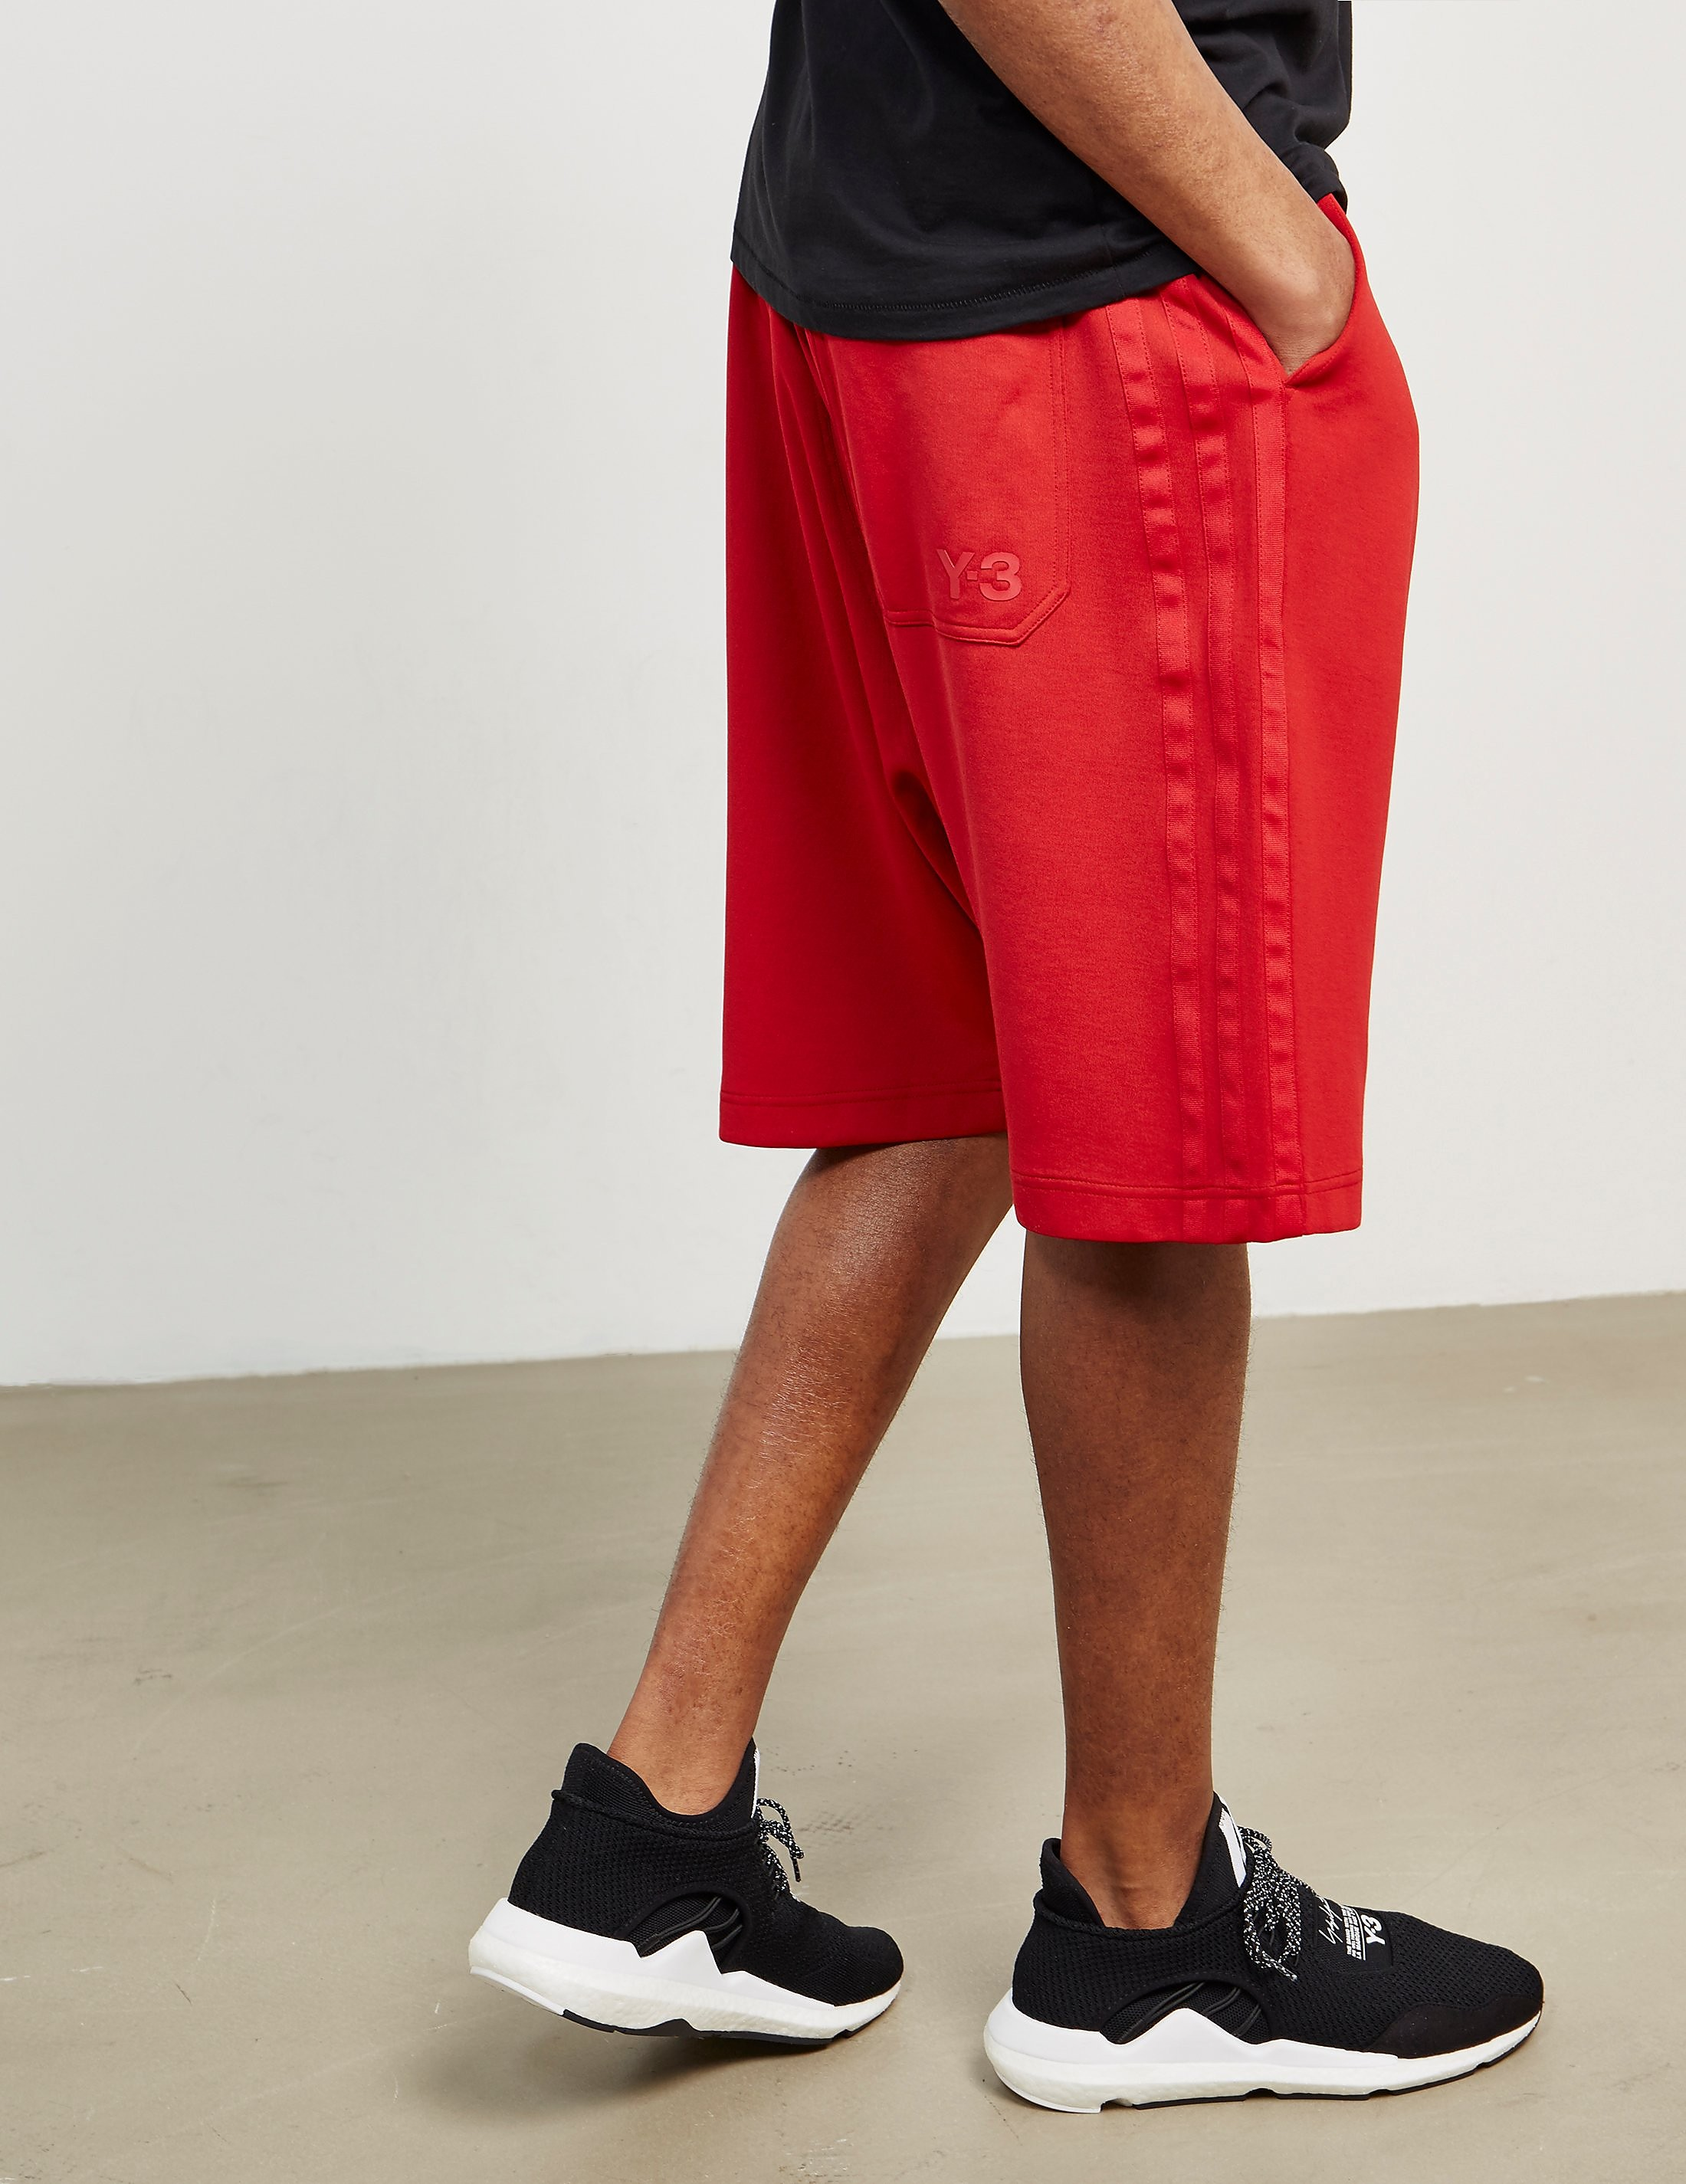 Y-3 Three Stripe Shorts